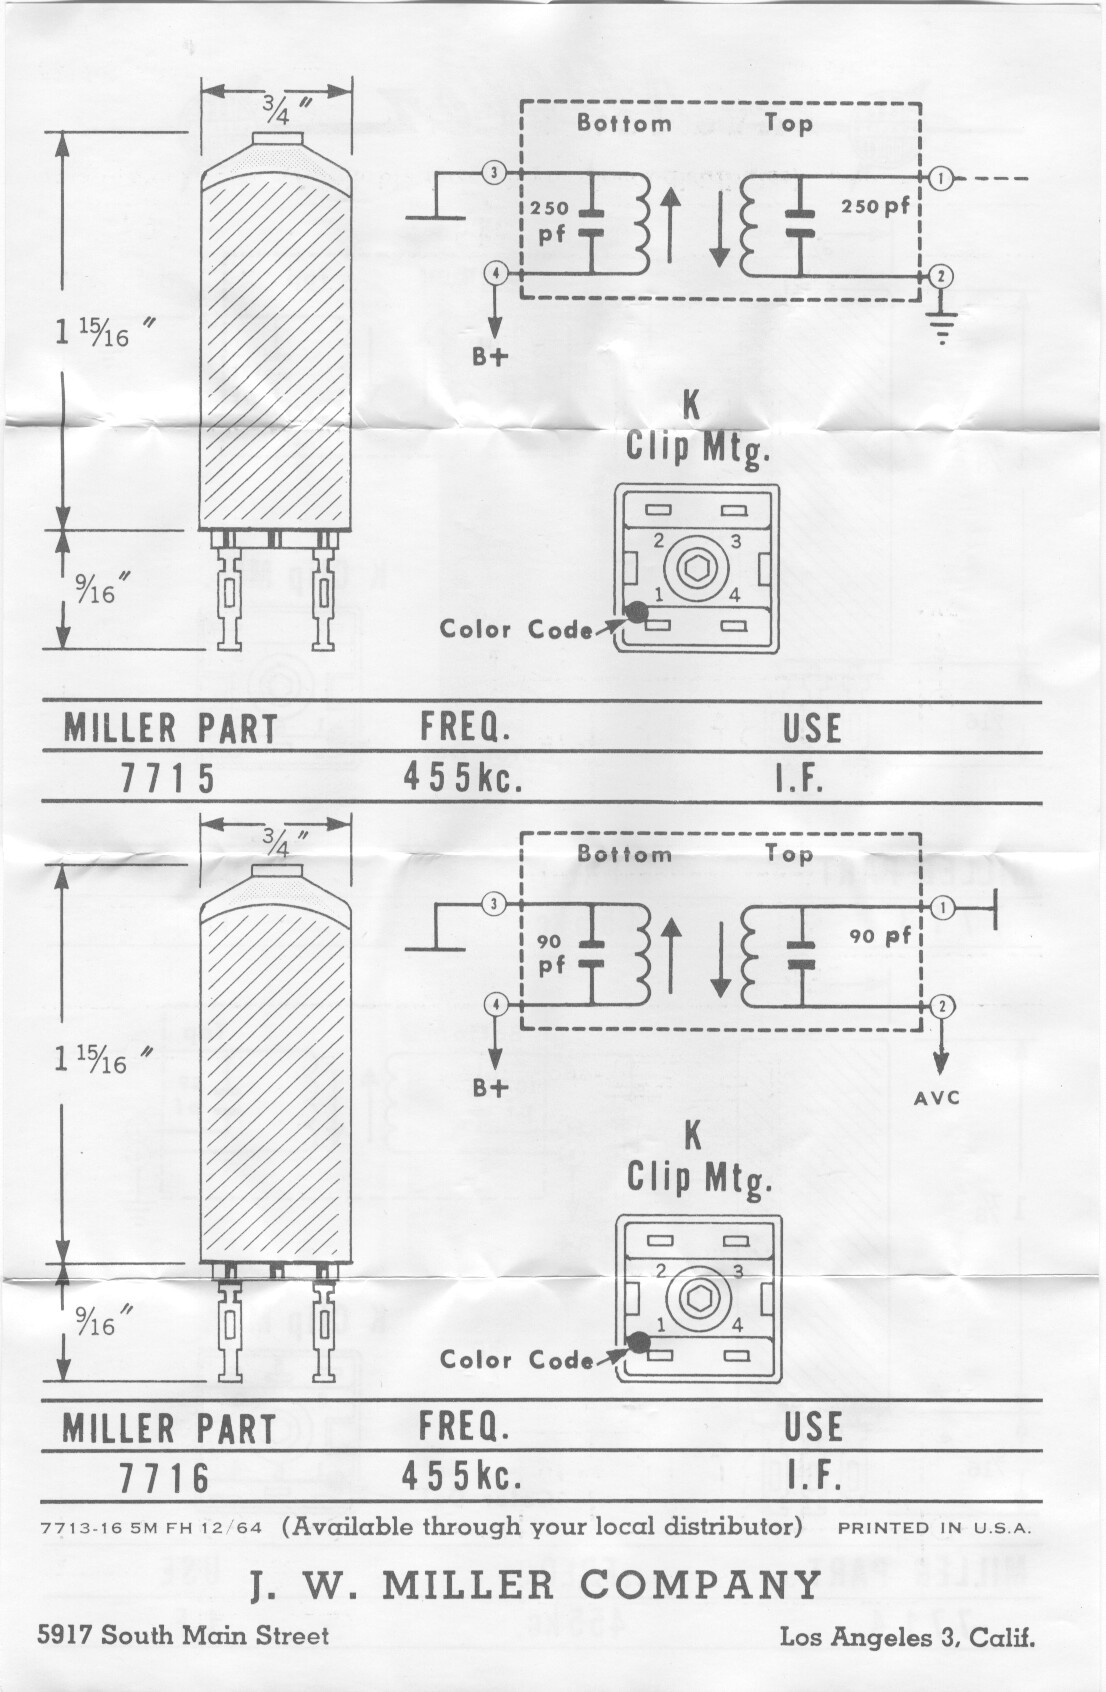 Complete Wiring Diagram Miller 250 Outlet Wiring